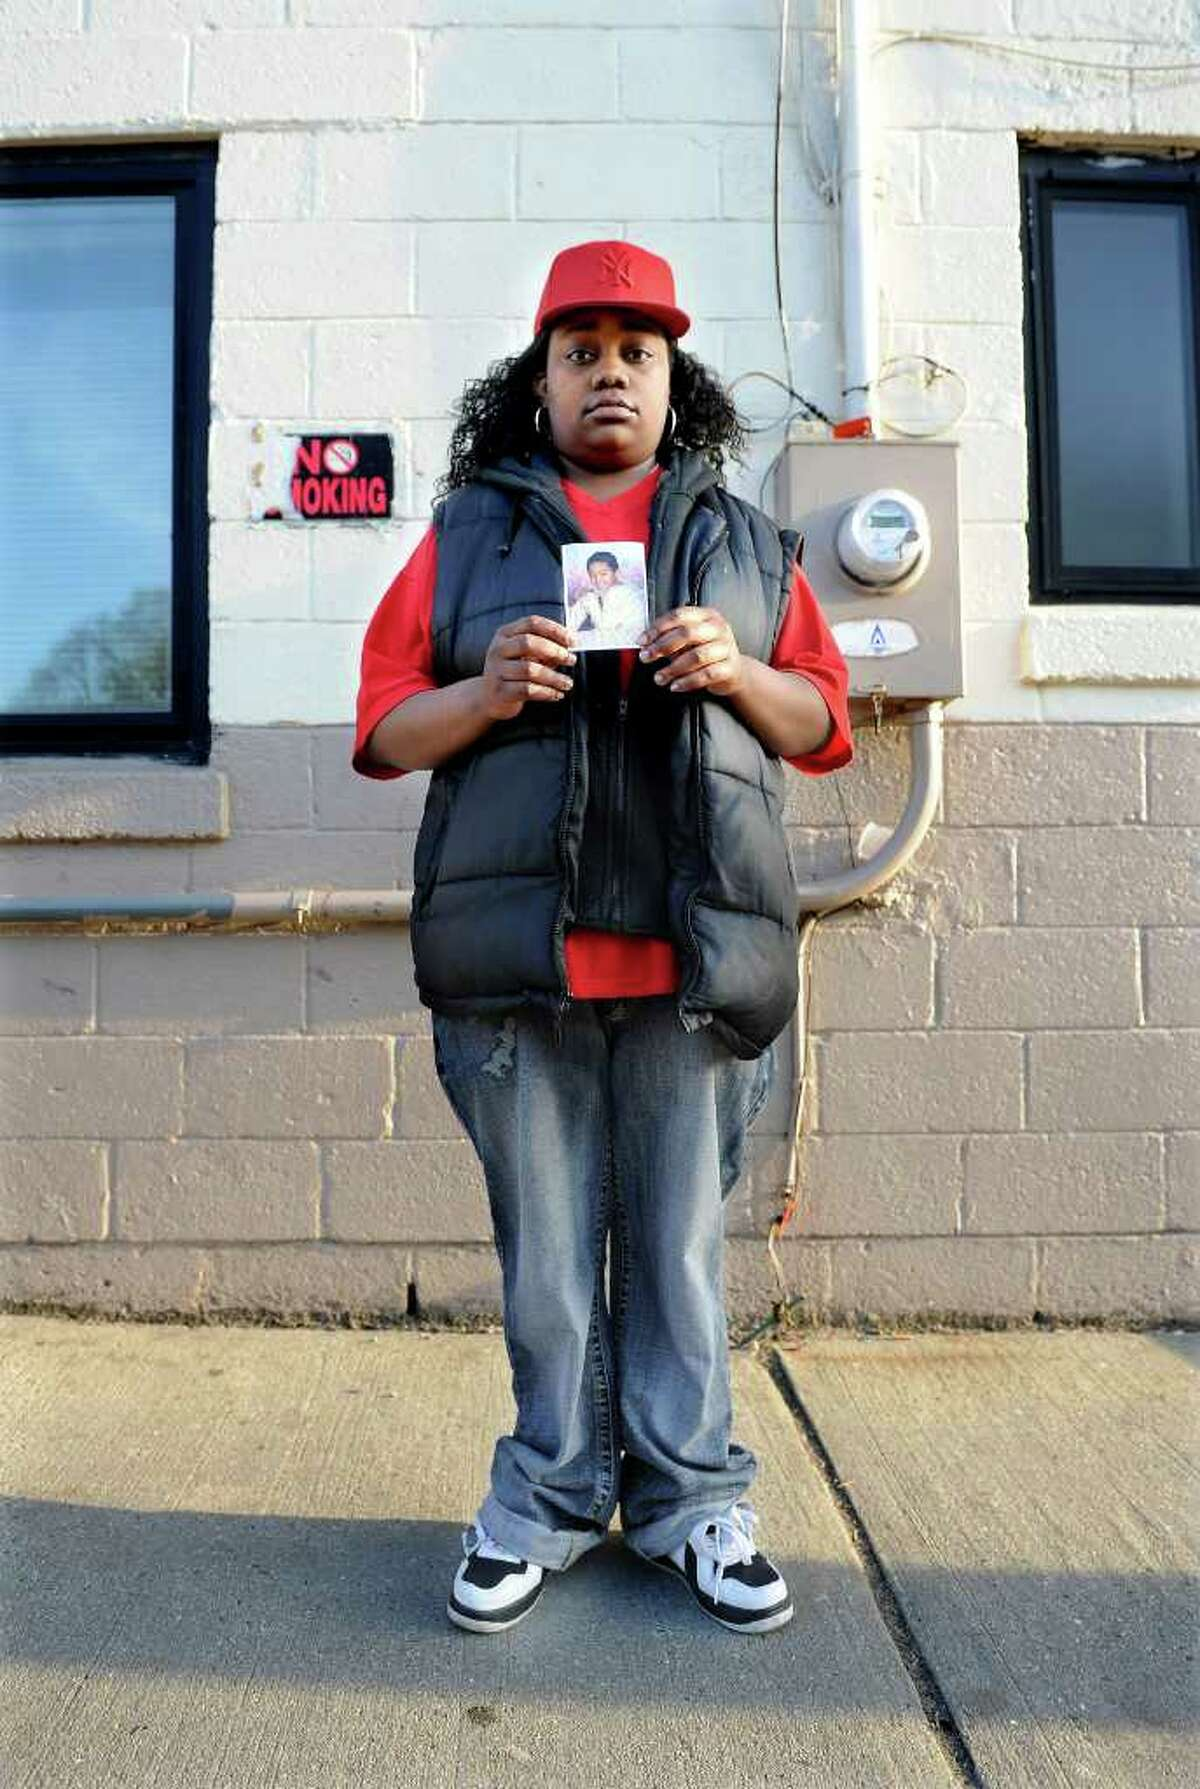 FILE - Tanya McDowell stands outside the Norwalk Emergency Shelter with a photo of her son, A.J. Paches, on Wednesday, April 20, 2011.